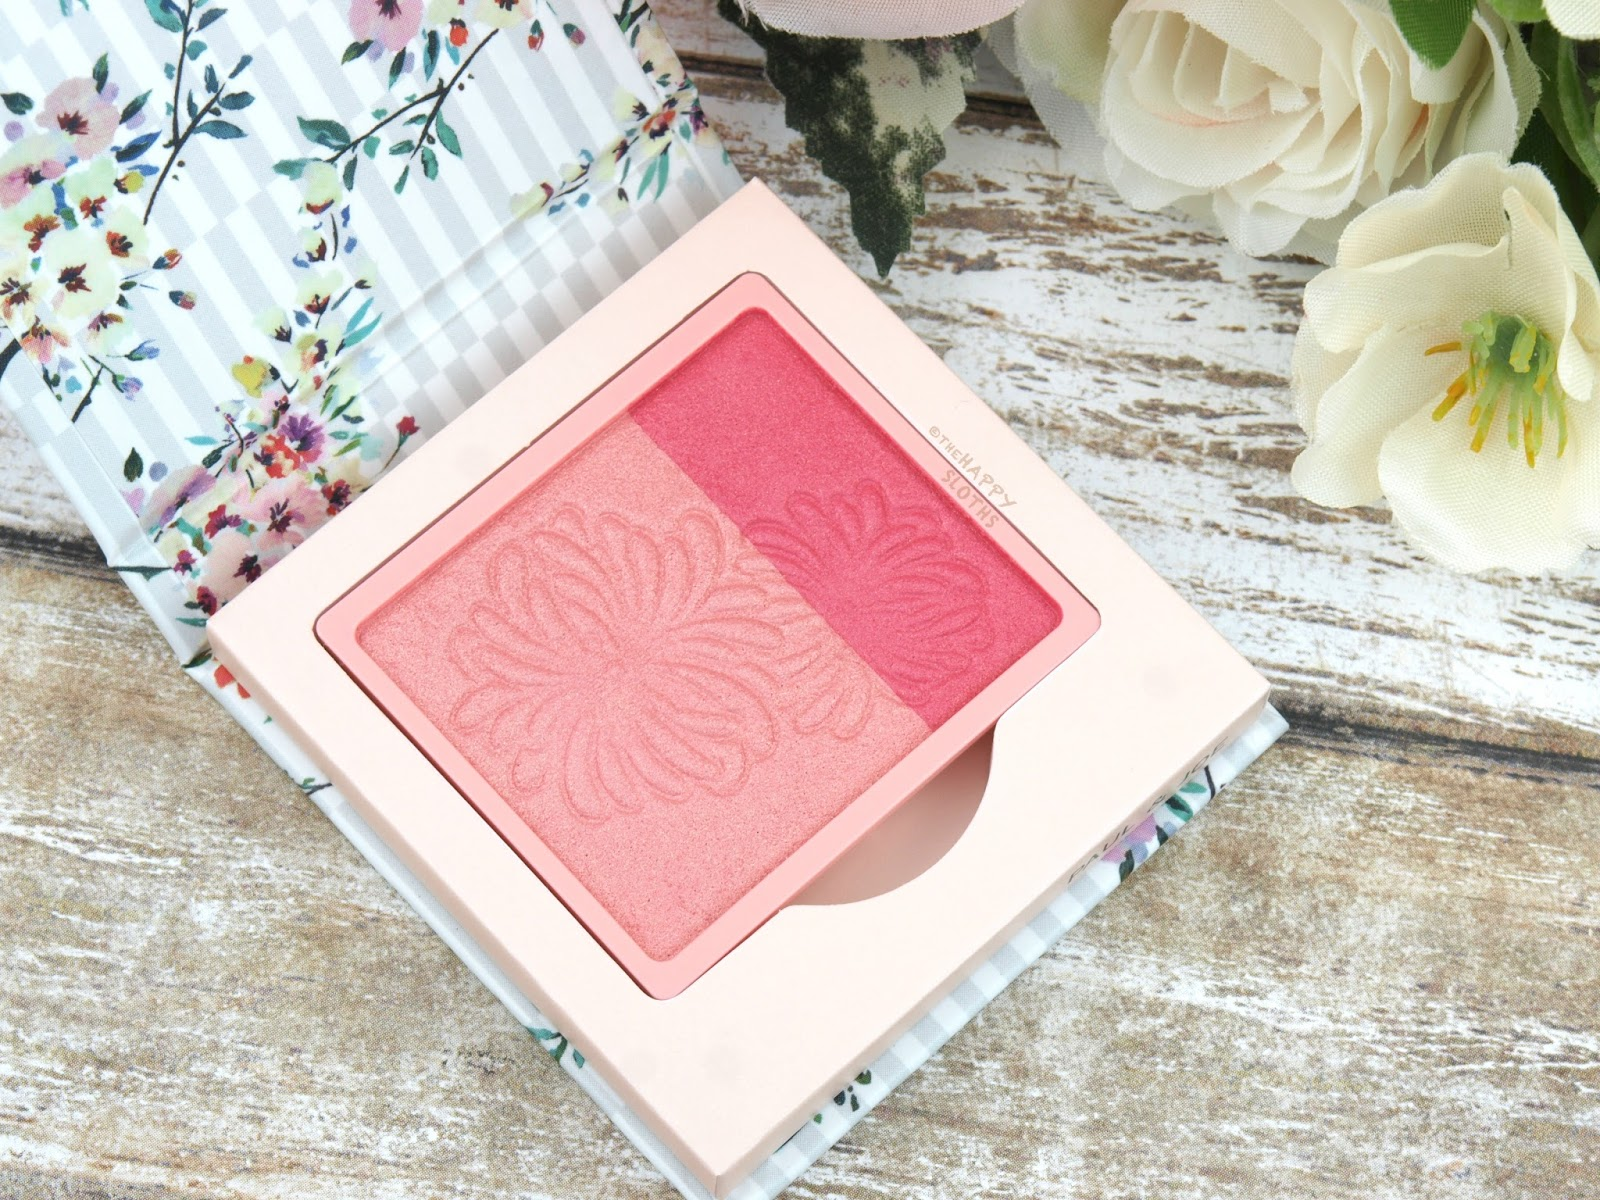 """Paul & Joe Spring 2017 Powder Blush in """"002 Mon Lapin"""": Review and Swatches"""